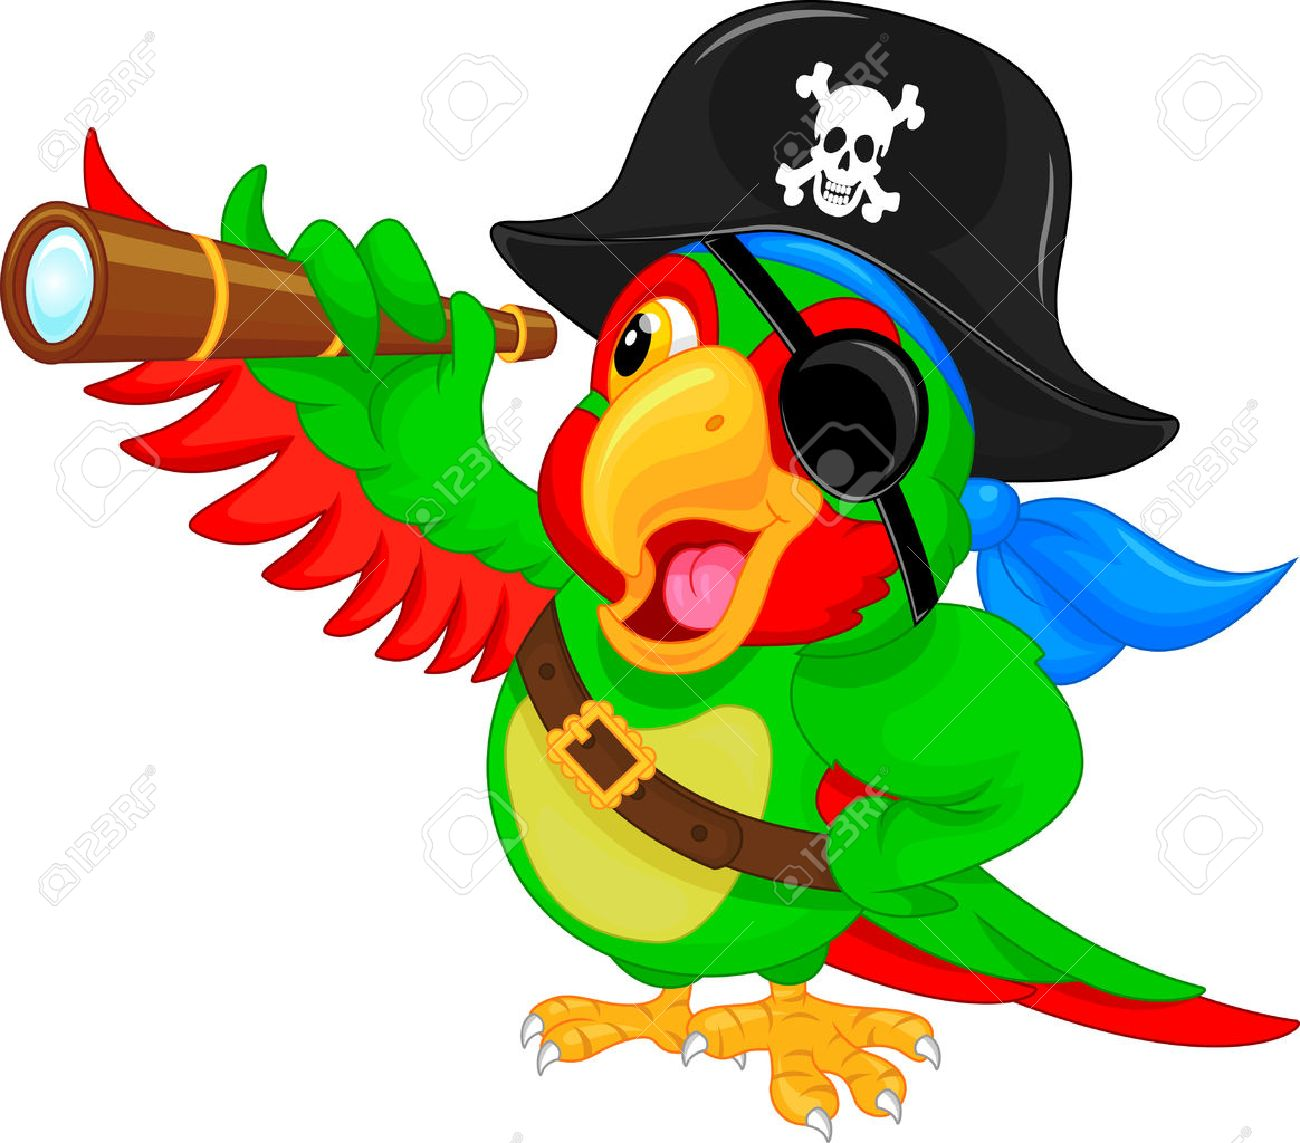 Pirate parrot png